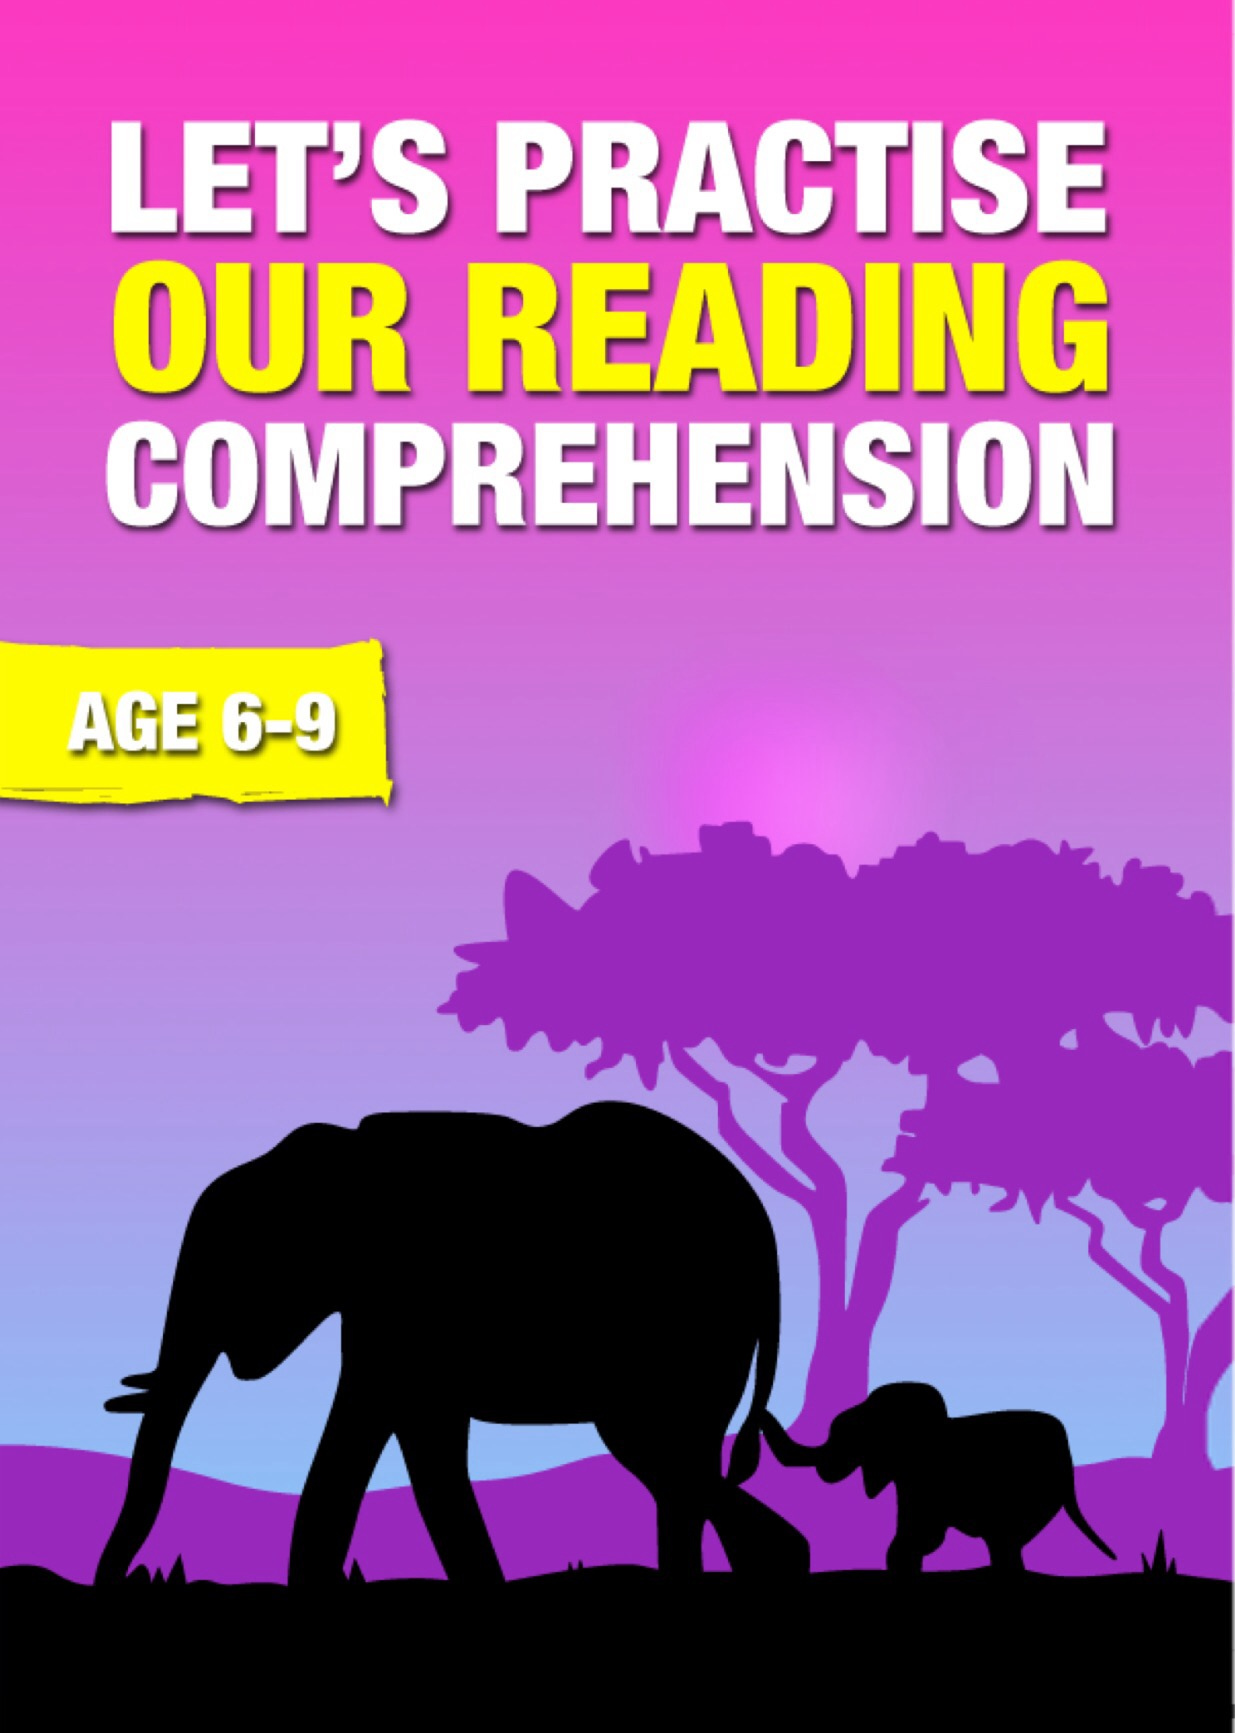 Let's Practise Our Reading Comprehension (6-9 years) Digital Download